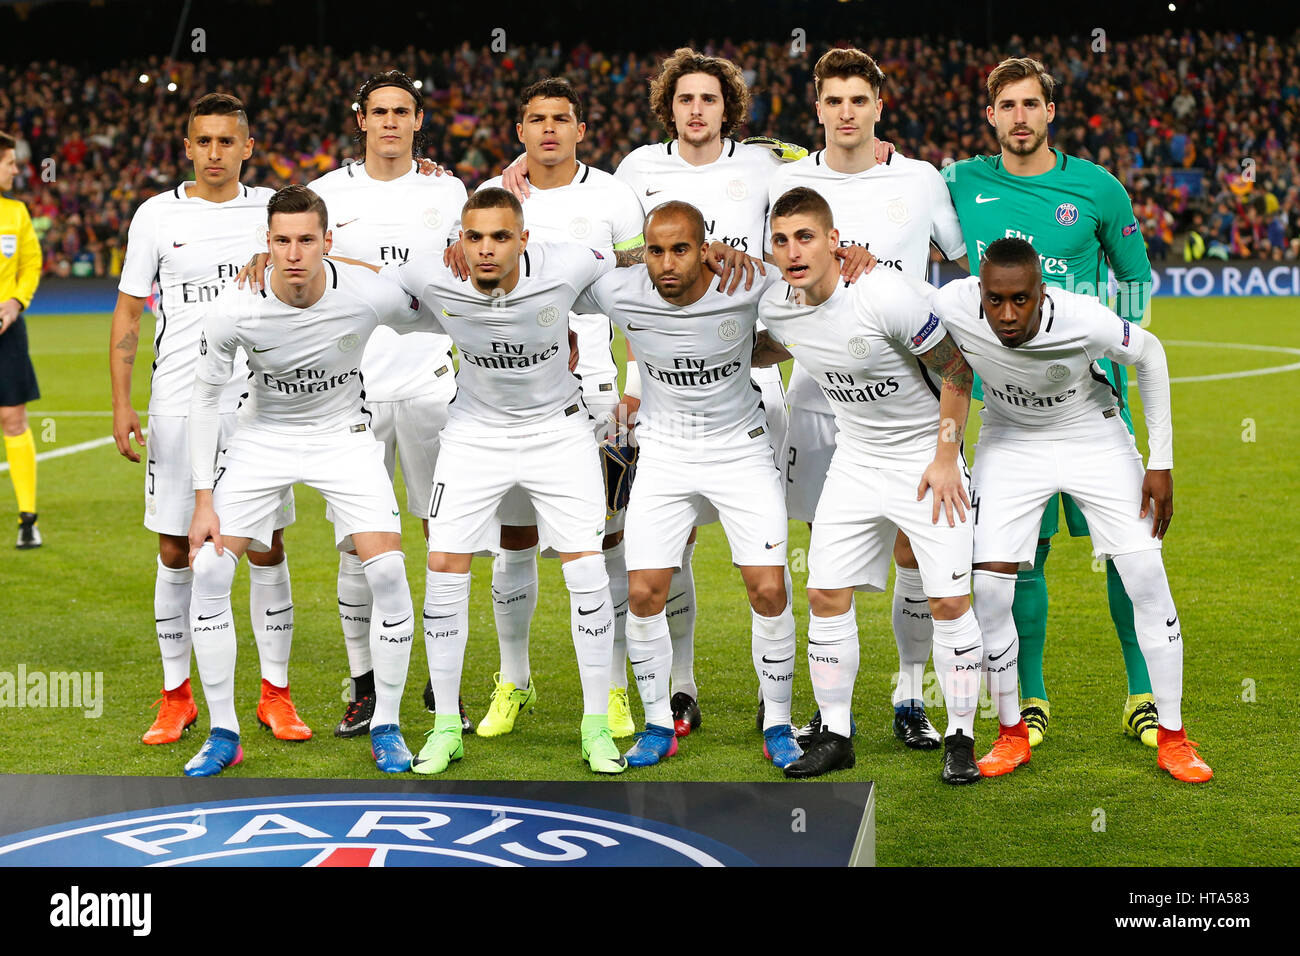 8th Mar 2017 Paris Saint Germain Team Group PSG March 8